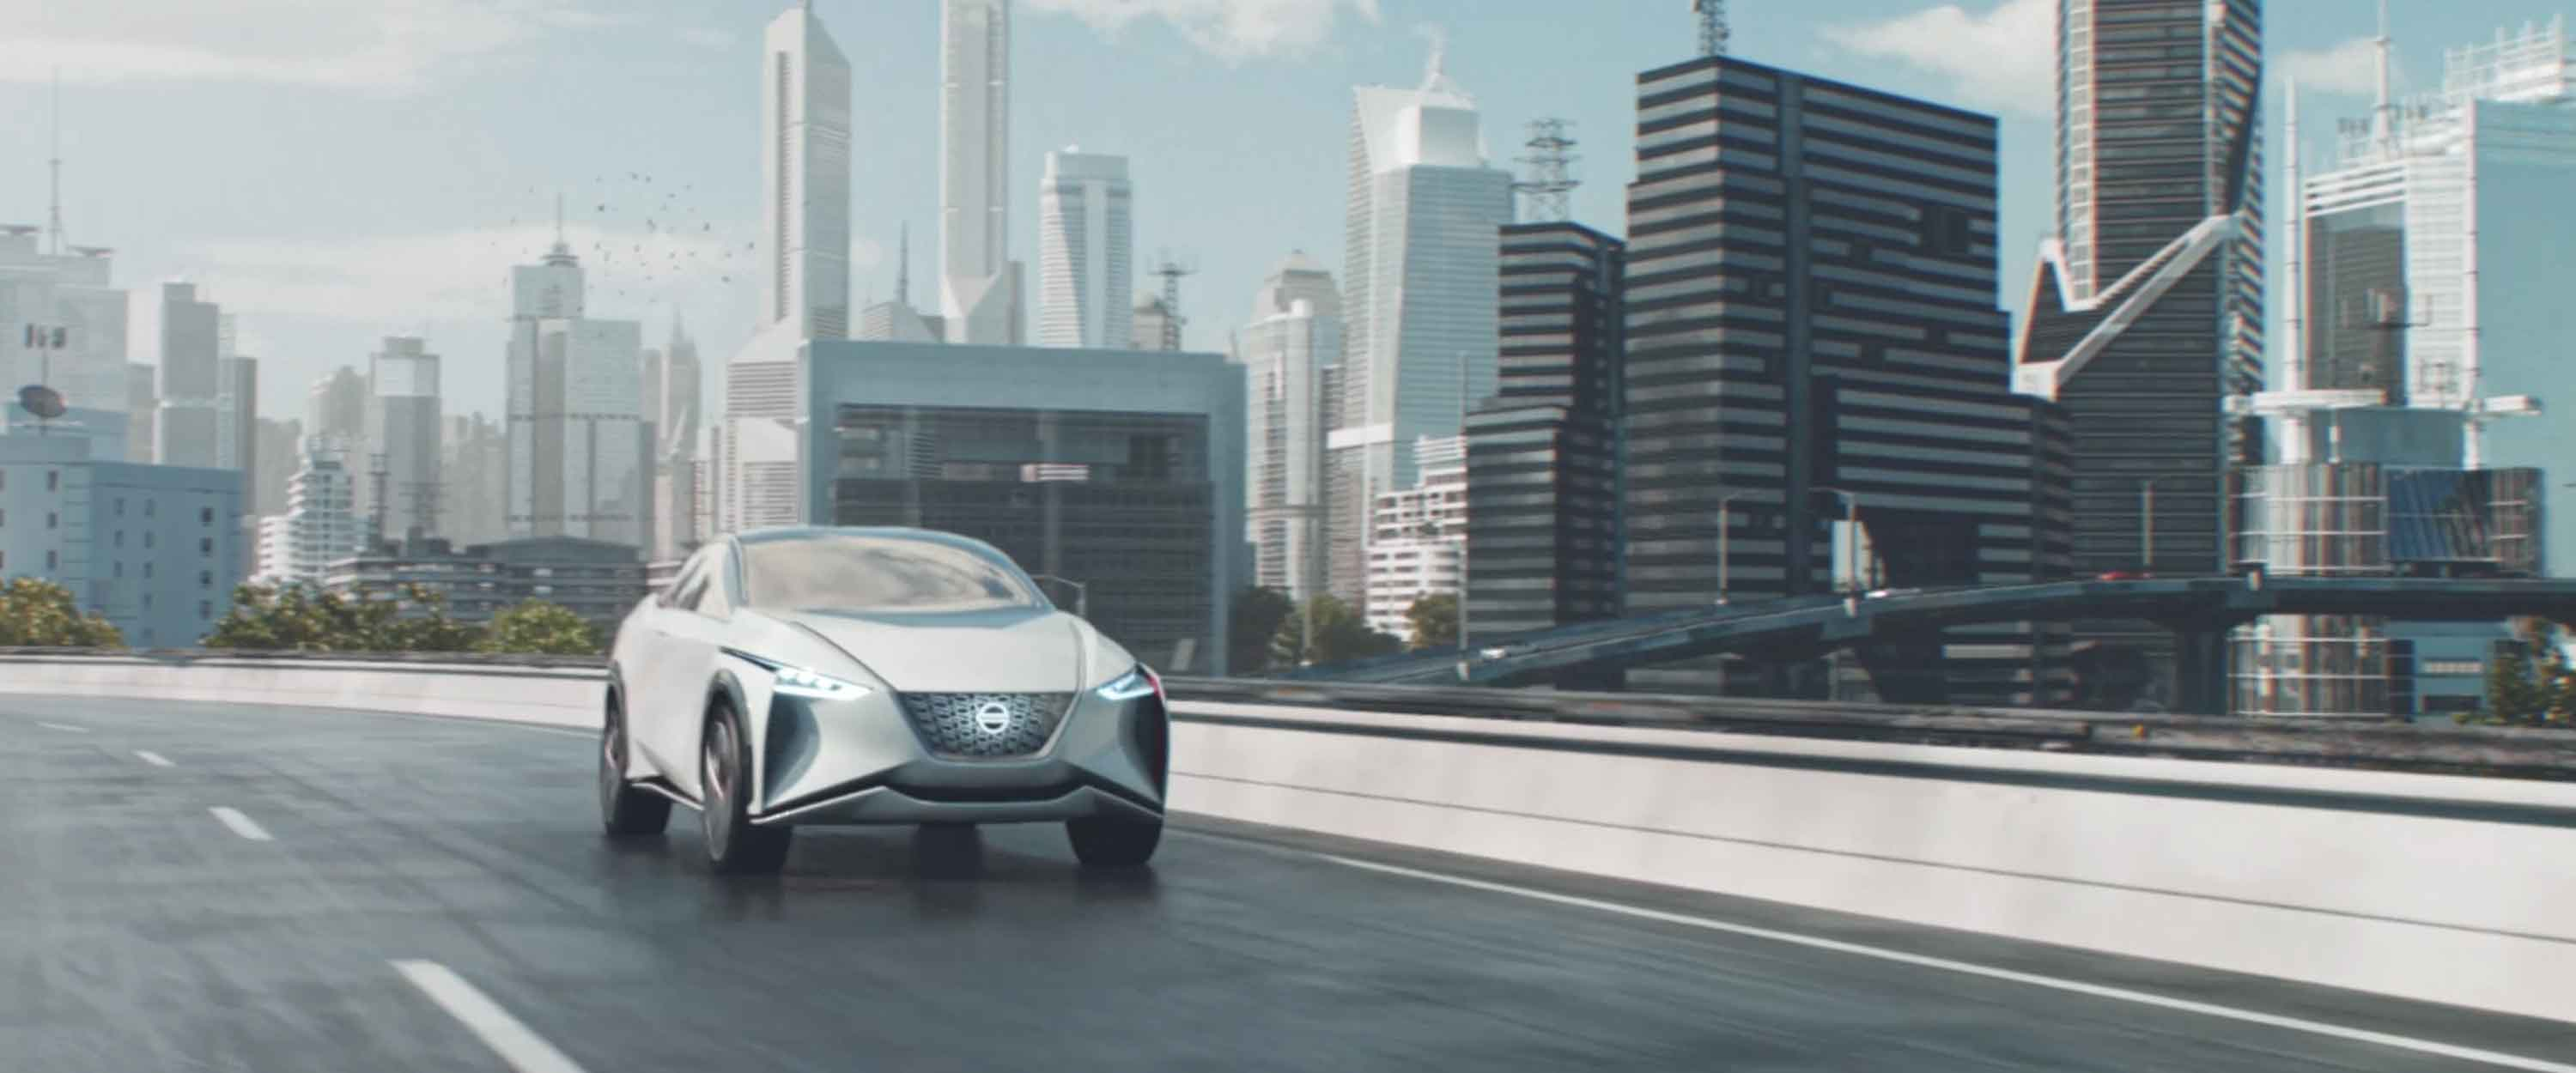 Auto concepto Nissan Intelligent Mobility